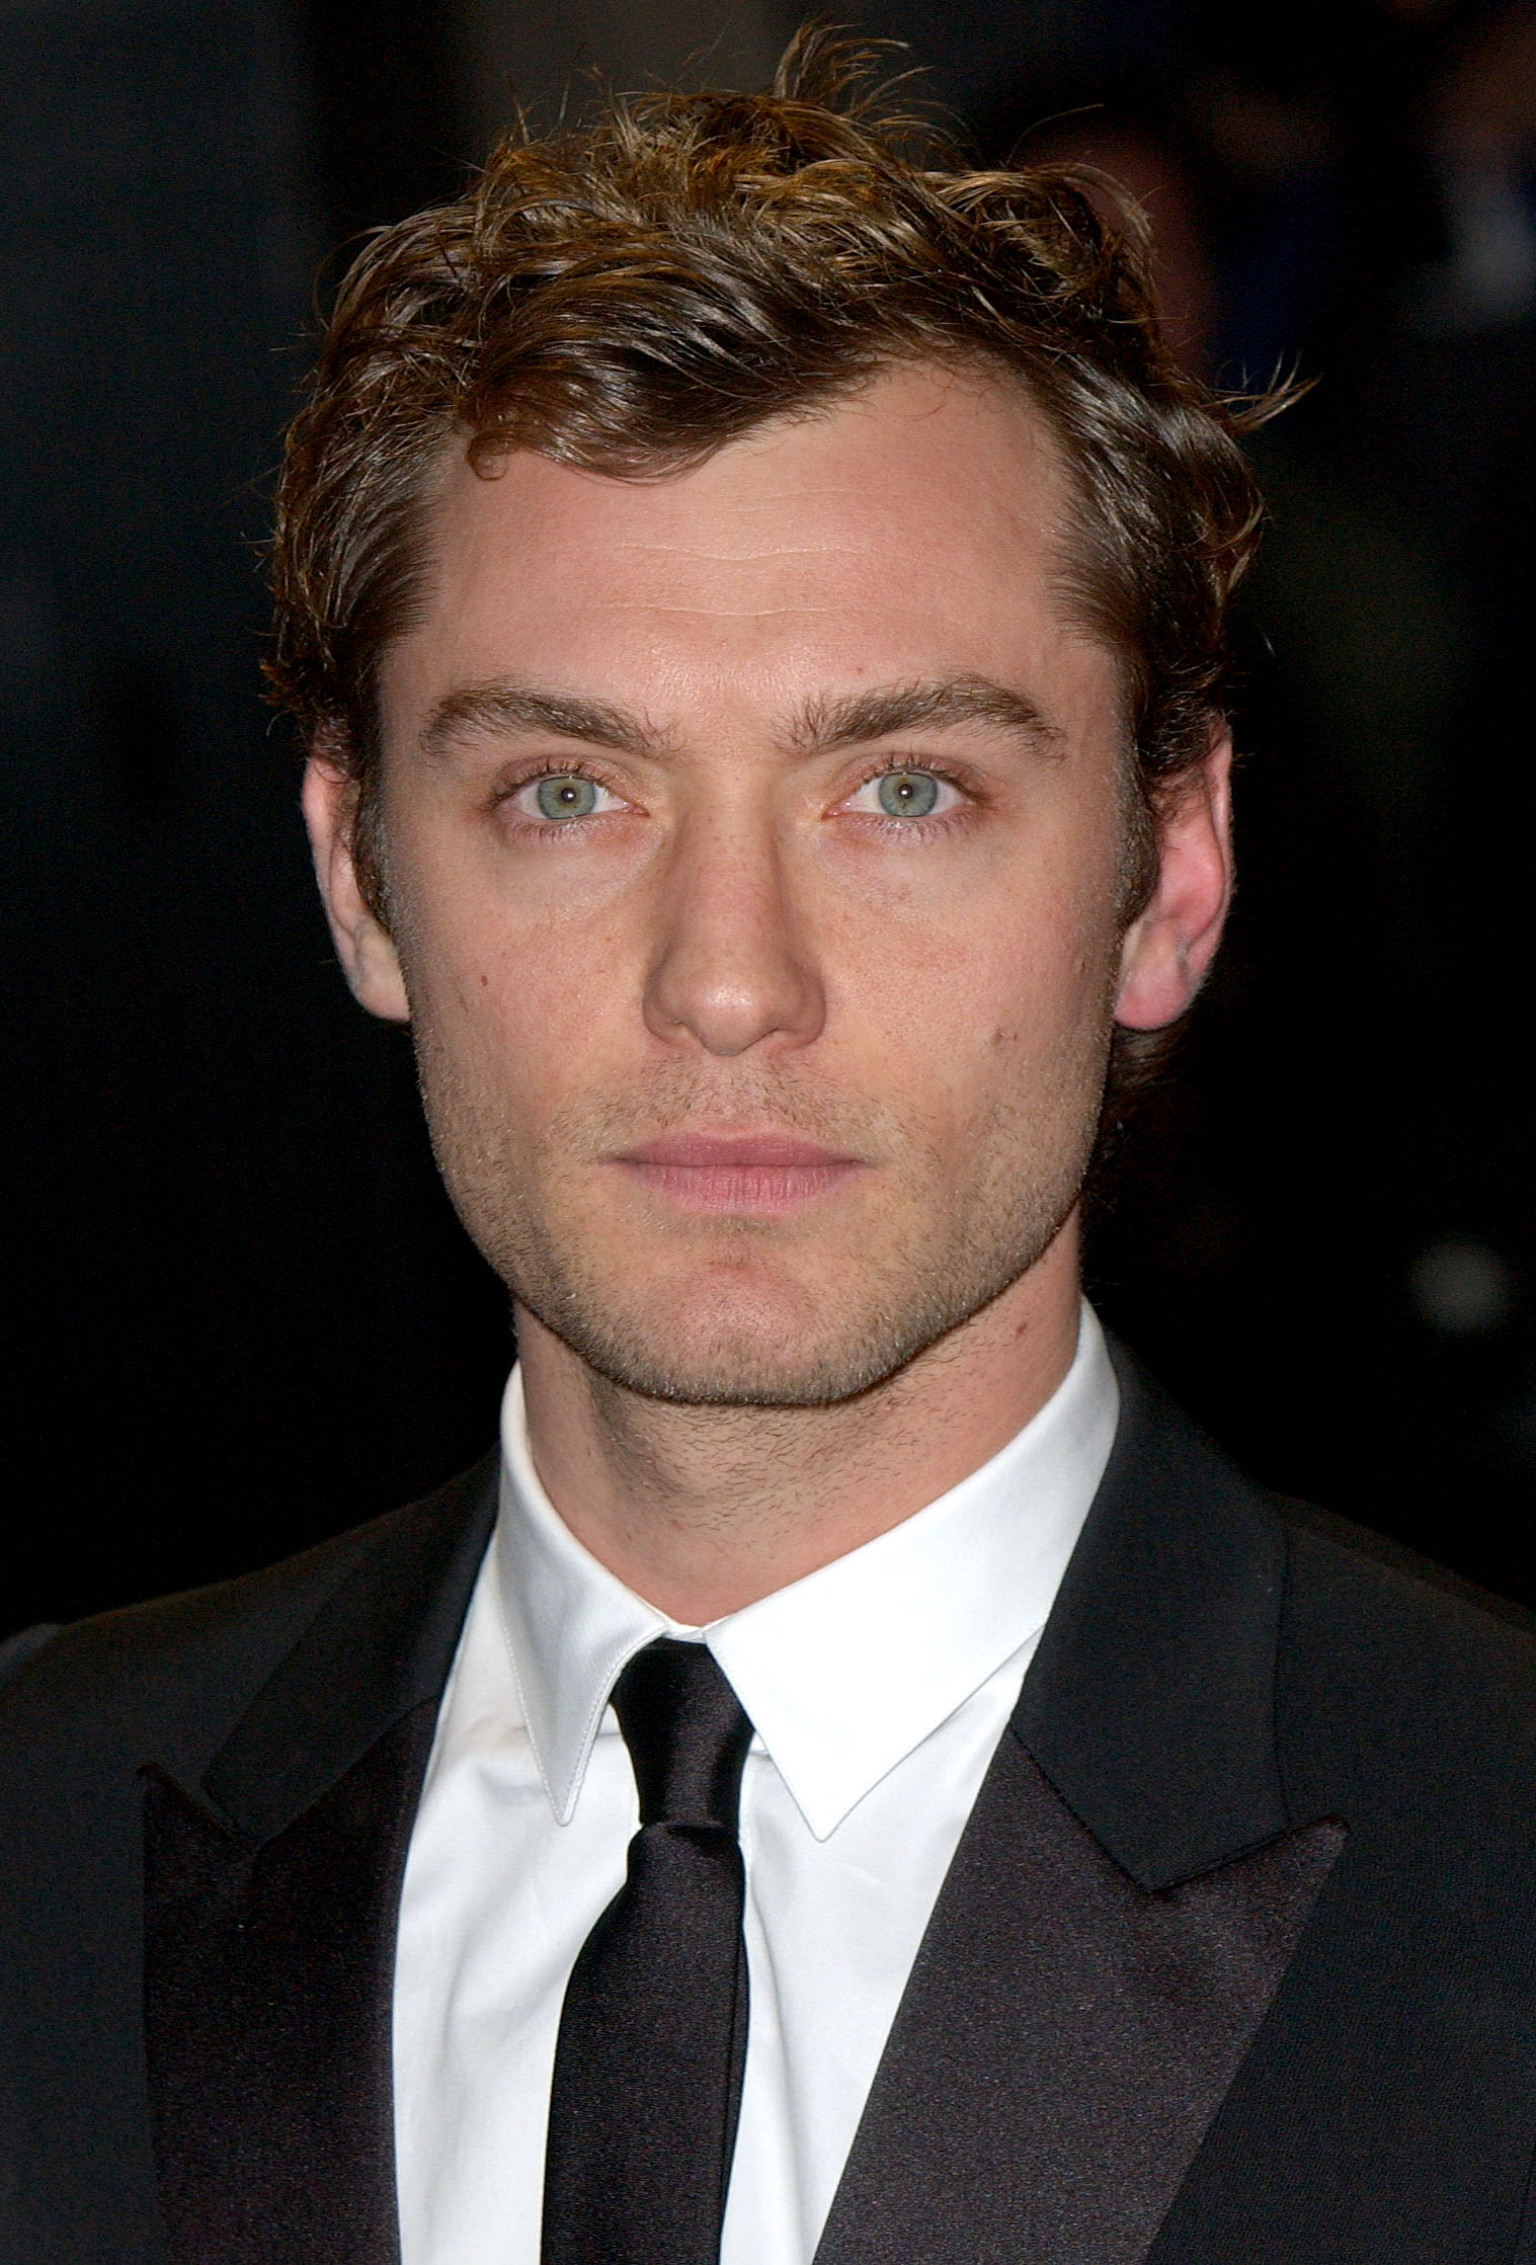 Jude Law Photo Rarely Seen Actor Reemerges In London Huffpost